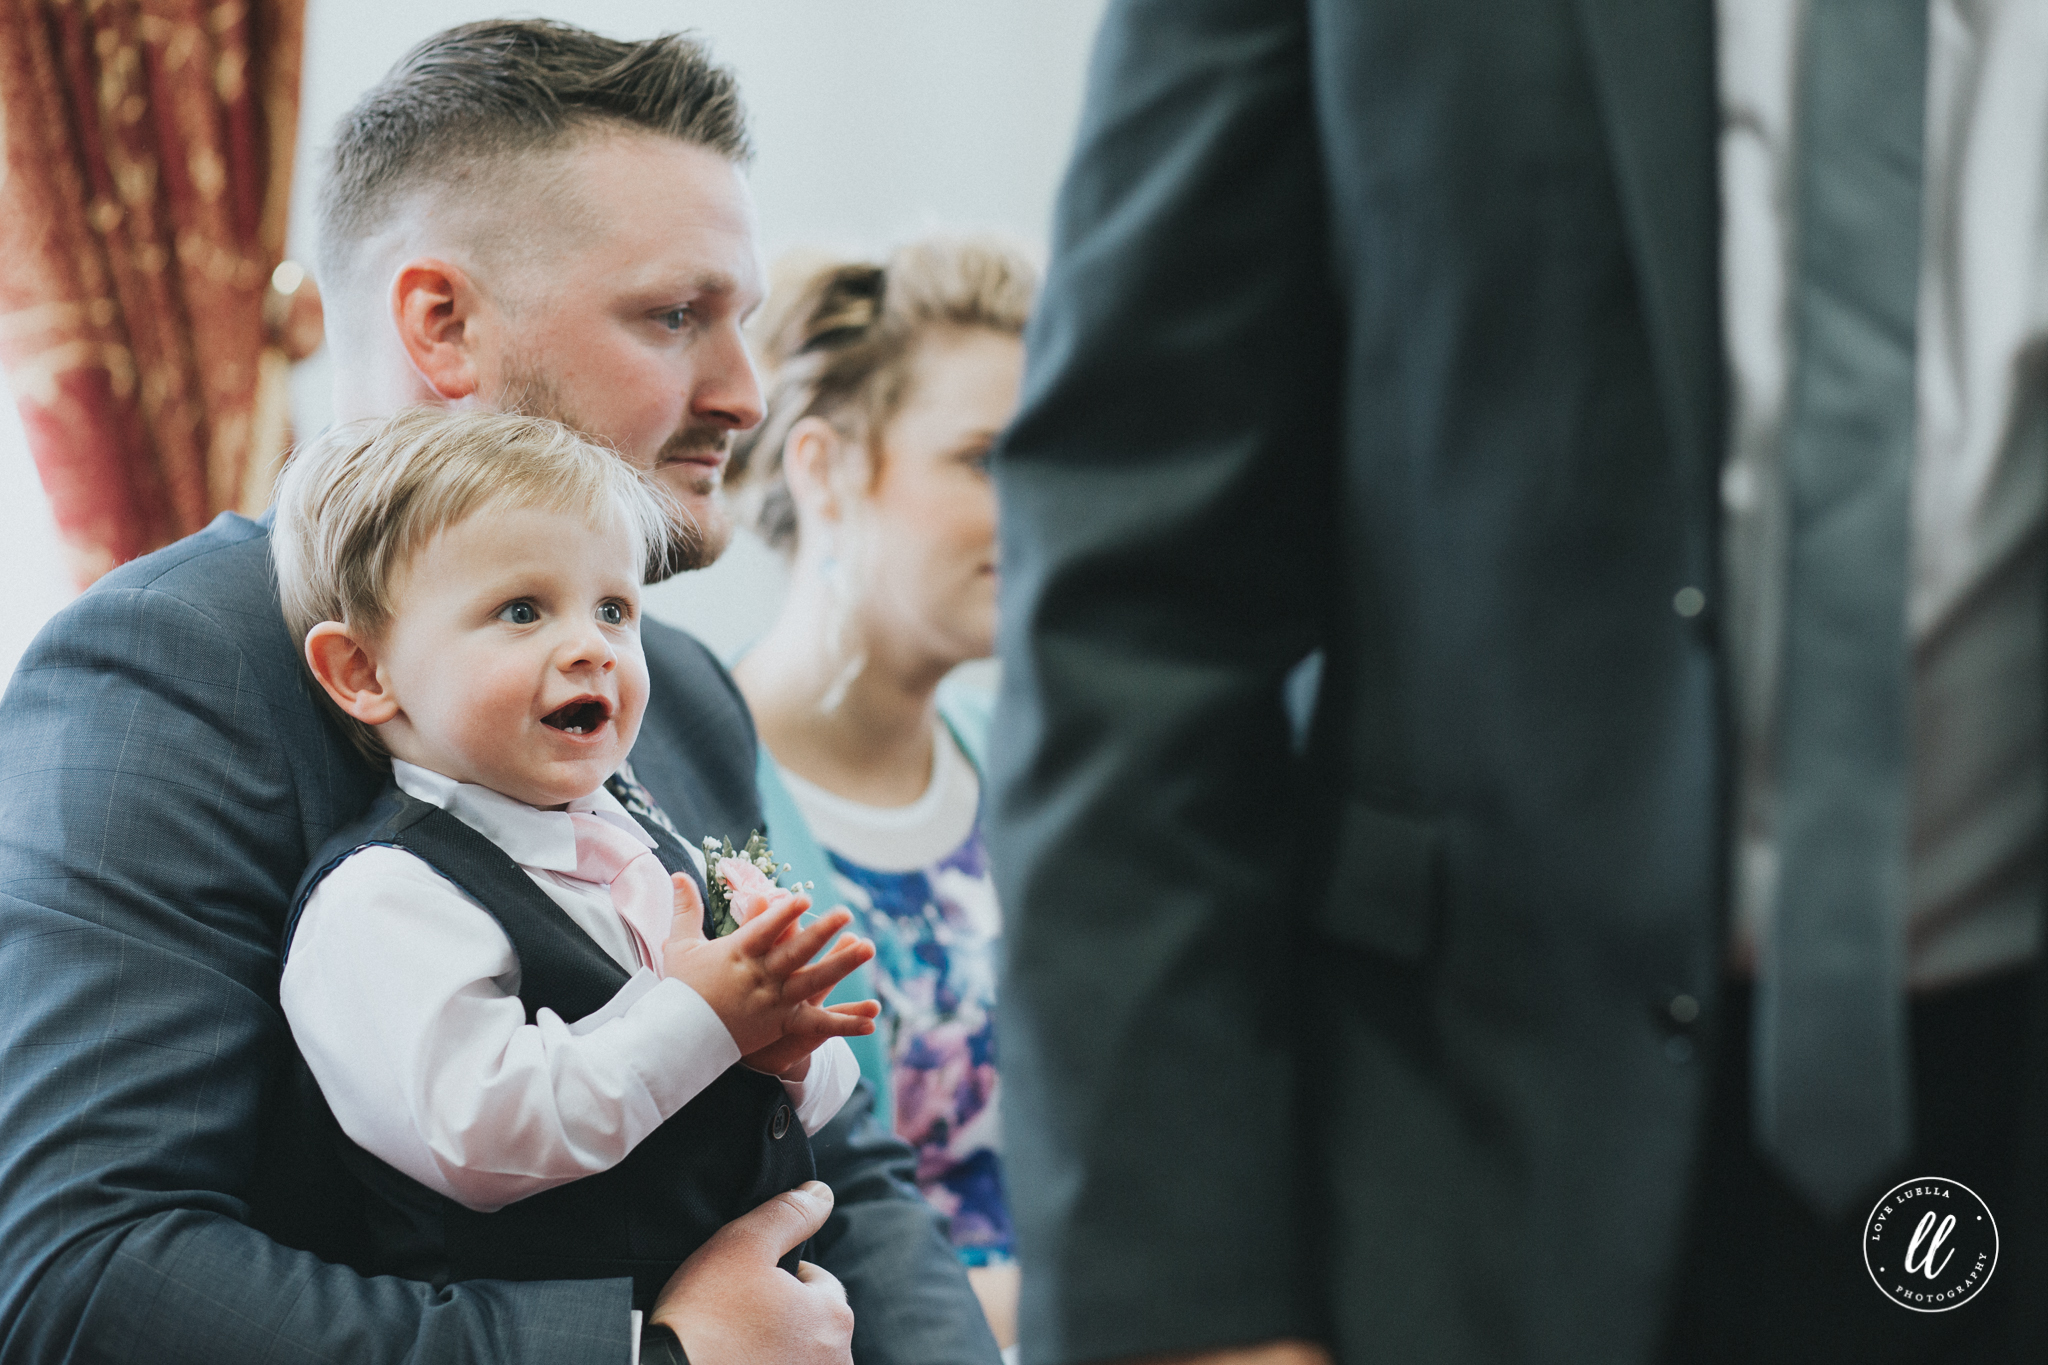 Candid moment in the llandudno town hall wedding ceremony